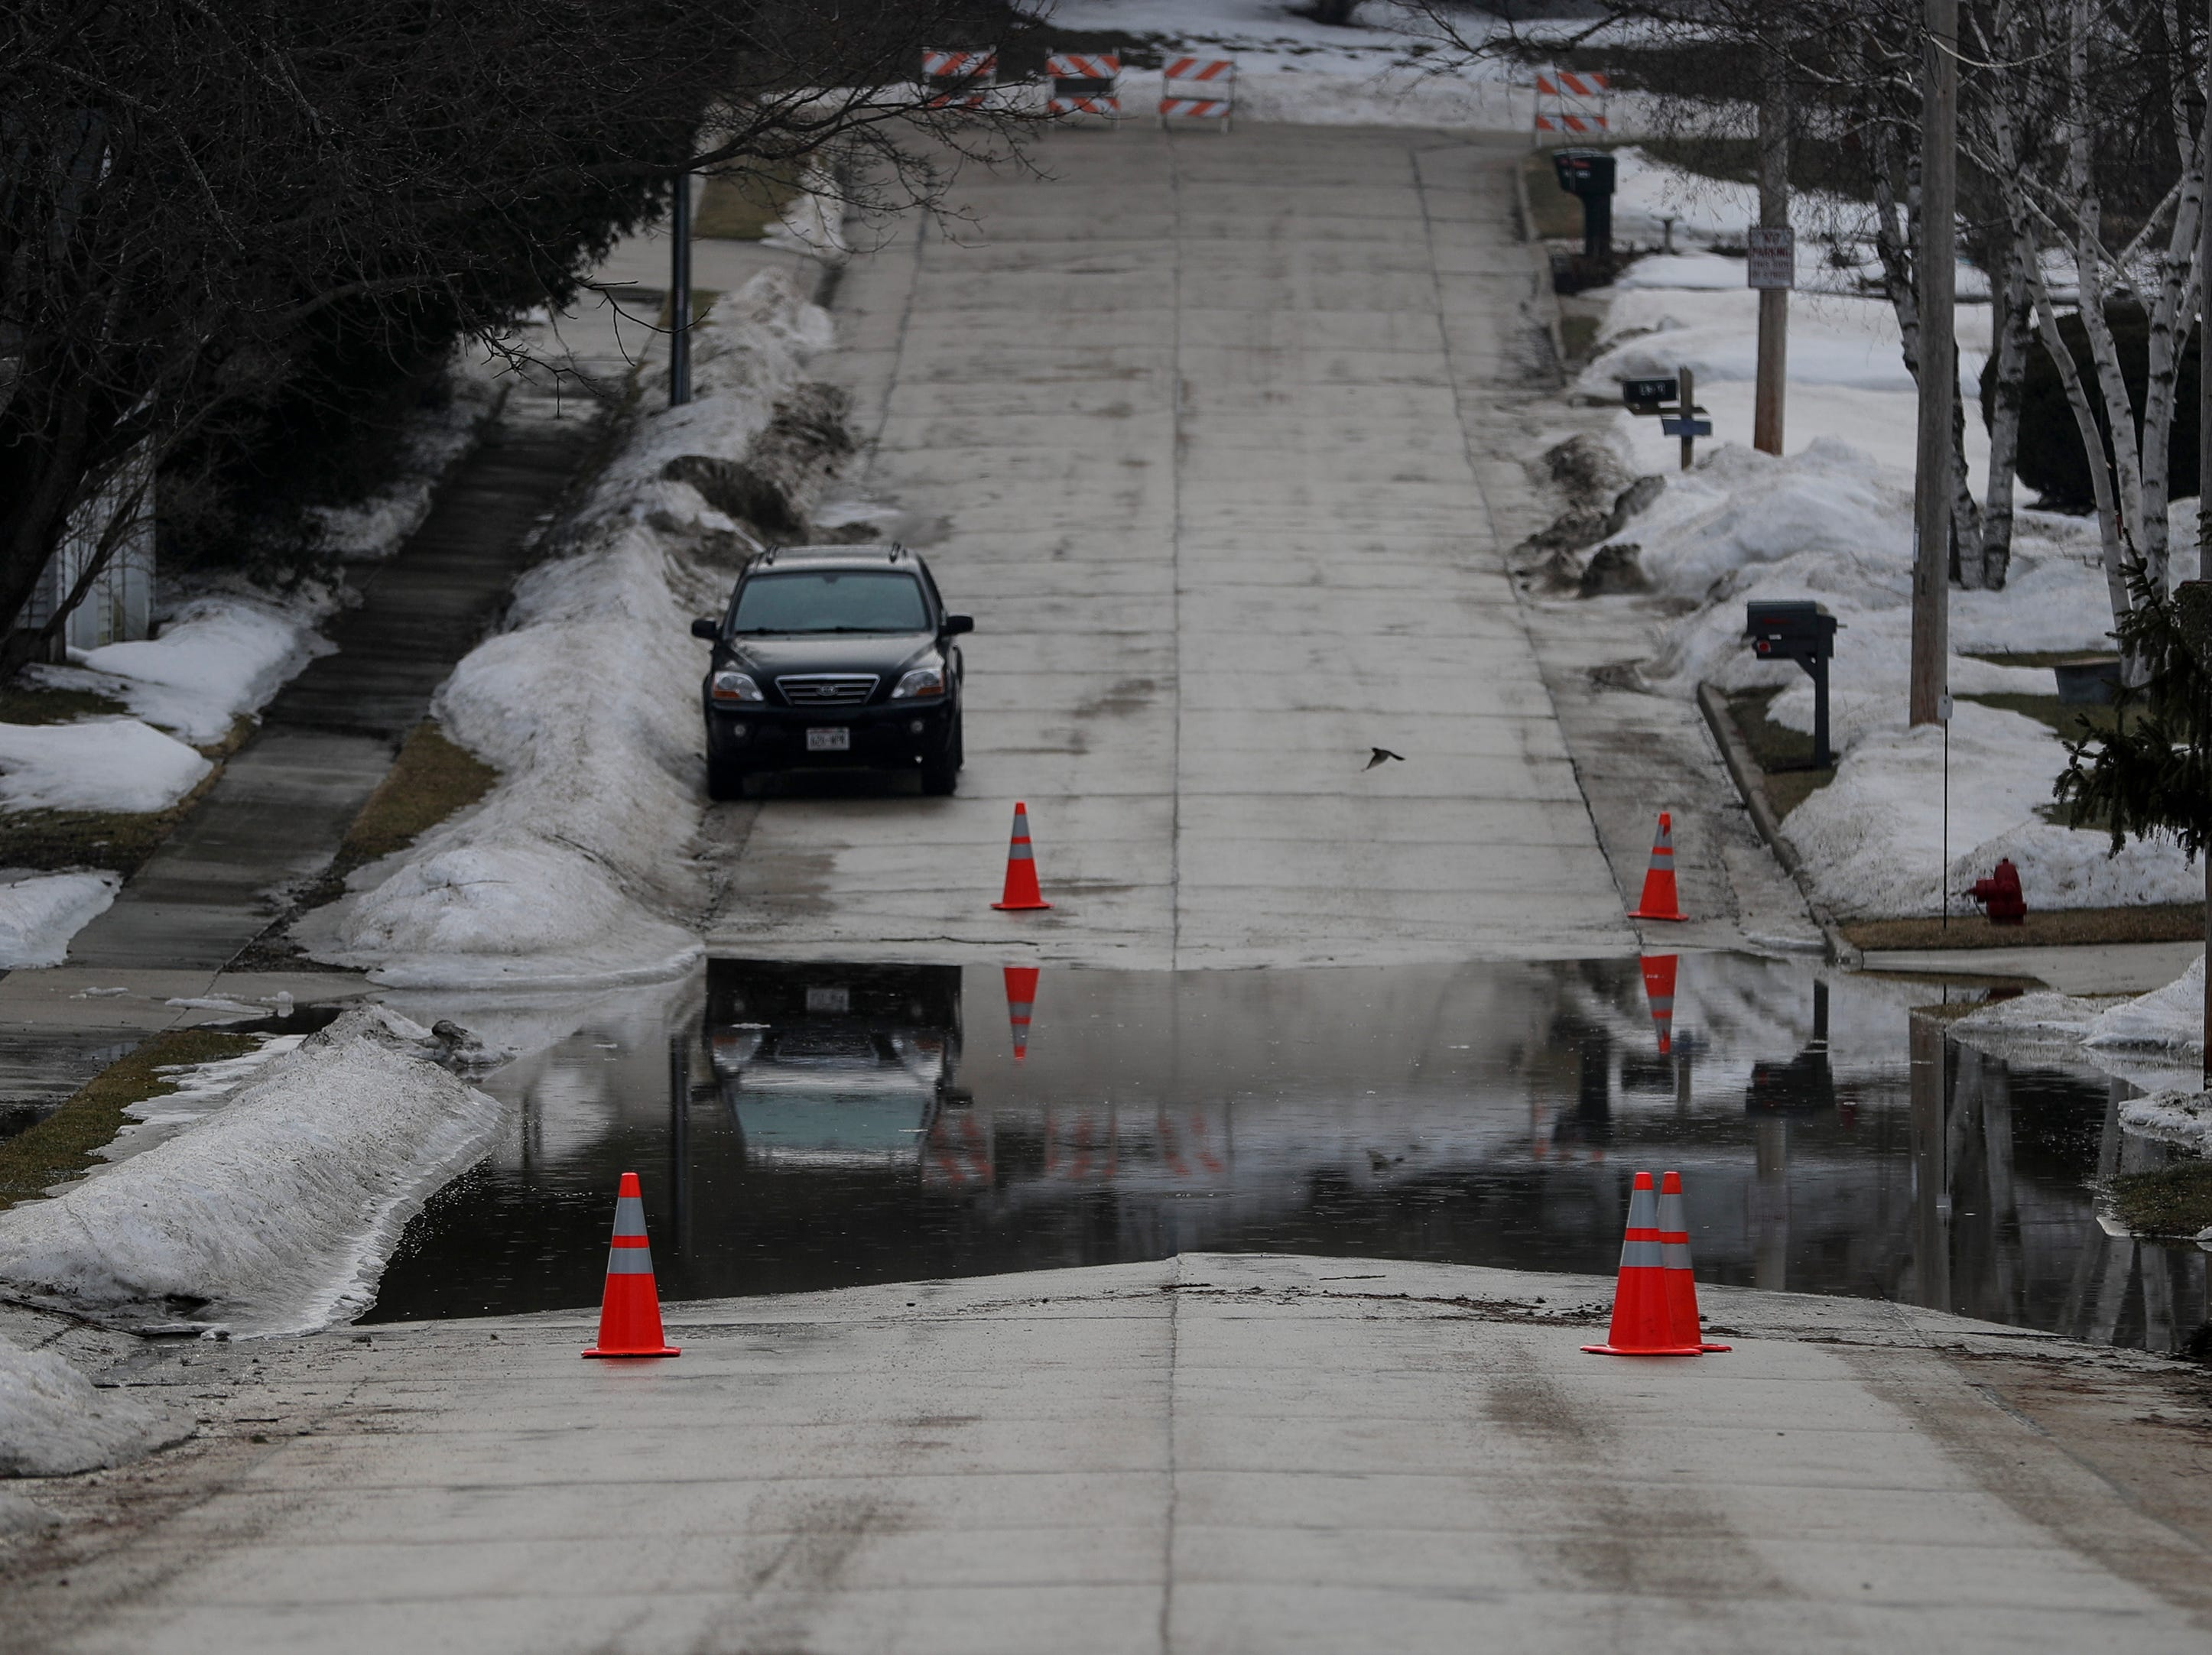 Water rises on the low part of Delta Street between Rapids Road and North 44th Street after ice jams up the Manitowoc River Wednesday, March 20, 2019, in Manitowoc, Wis. Joshua Clark/USA TODAY NETWORK-Wisconsin